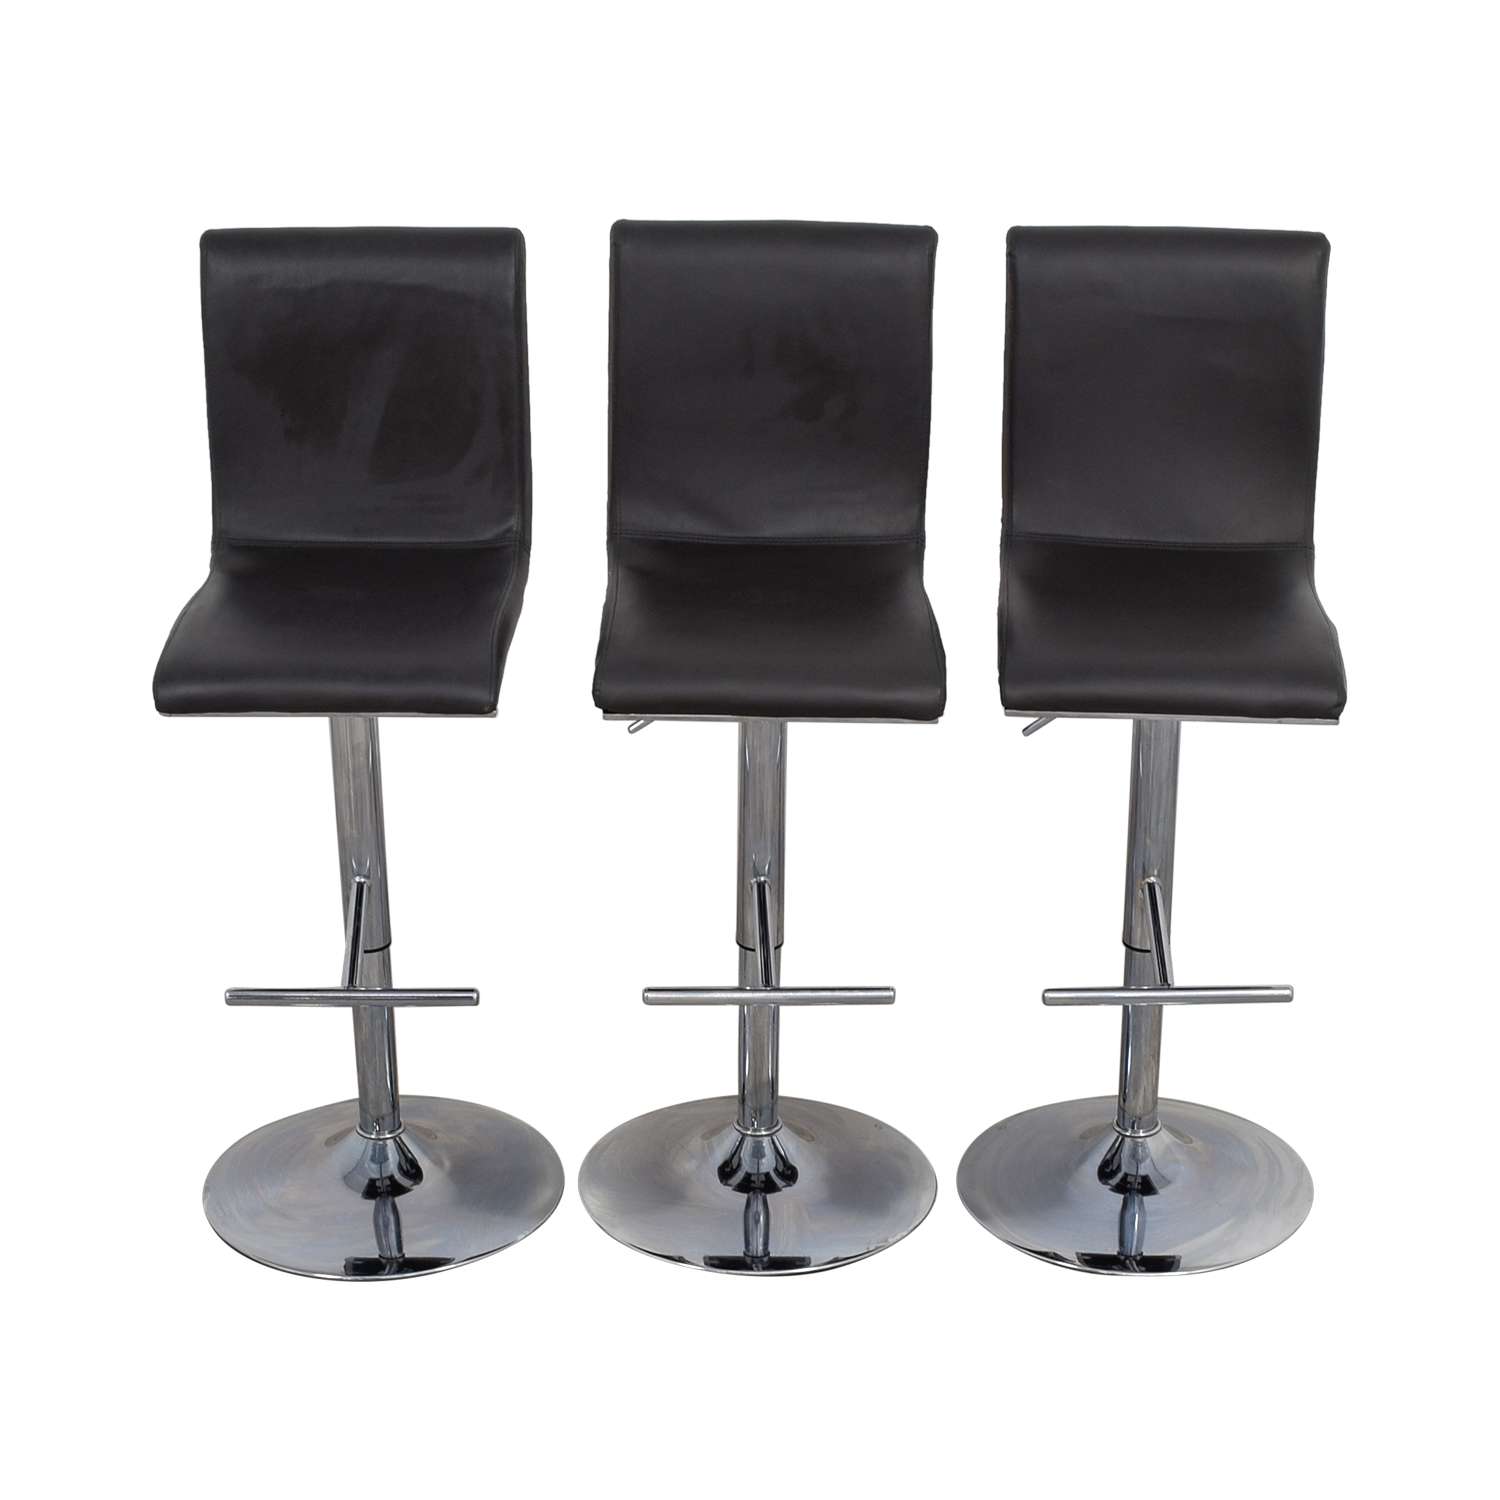 Lumi Source Lumi Source Grey Adjustable Bar Stools for sale